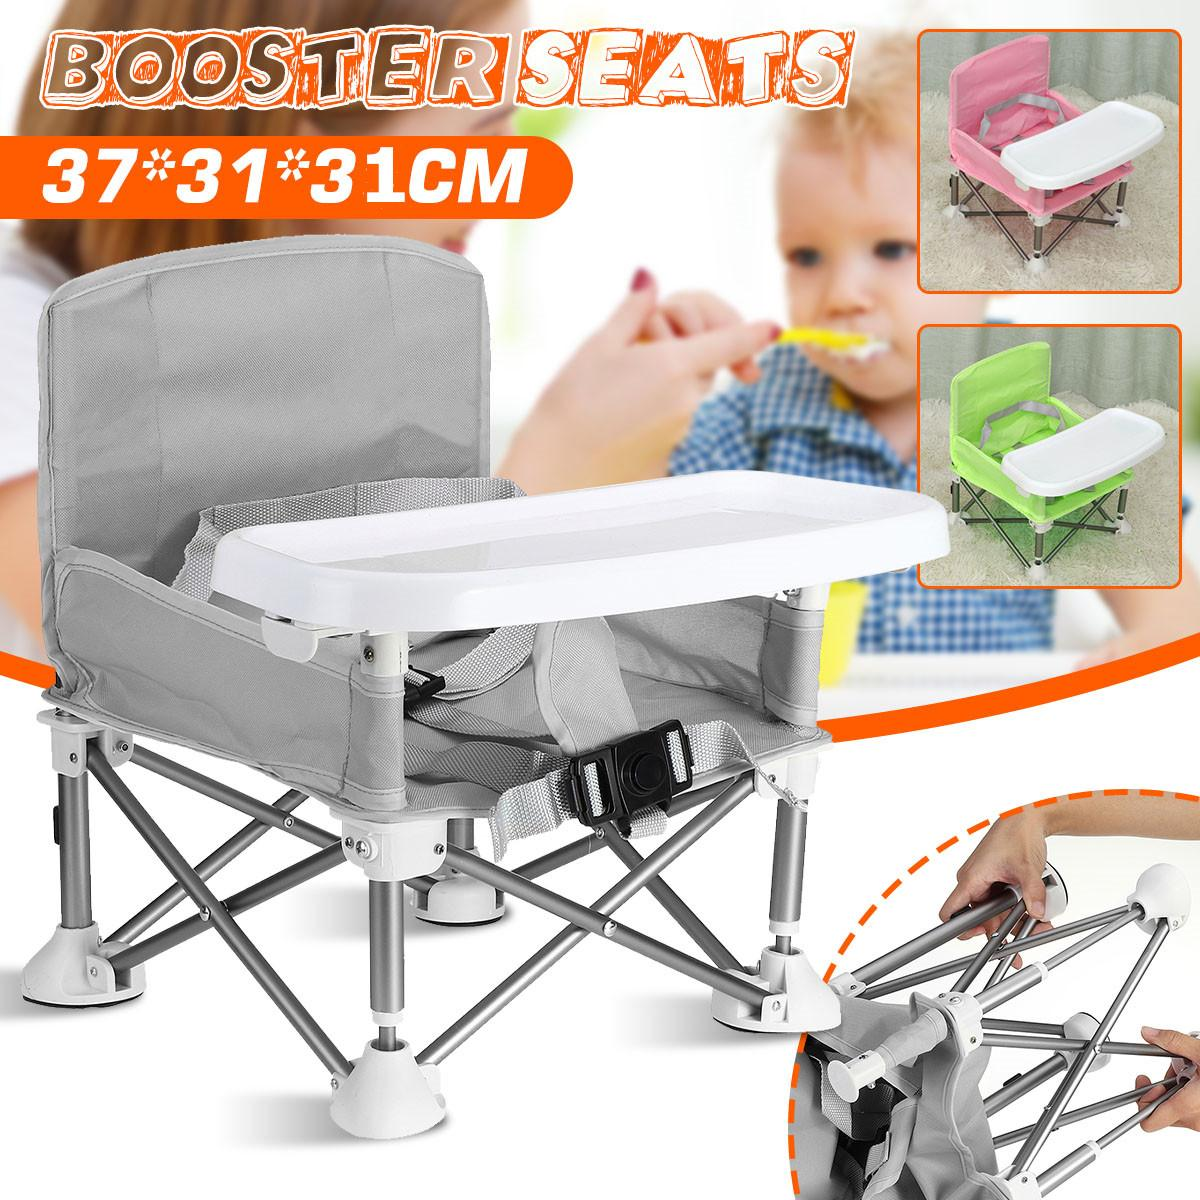 Baby Booster Seat Aluminum alloy Children Dining Table Portable Outdoor Folding Chair Multifunctional Baby Dining Chair